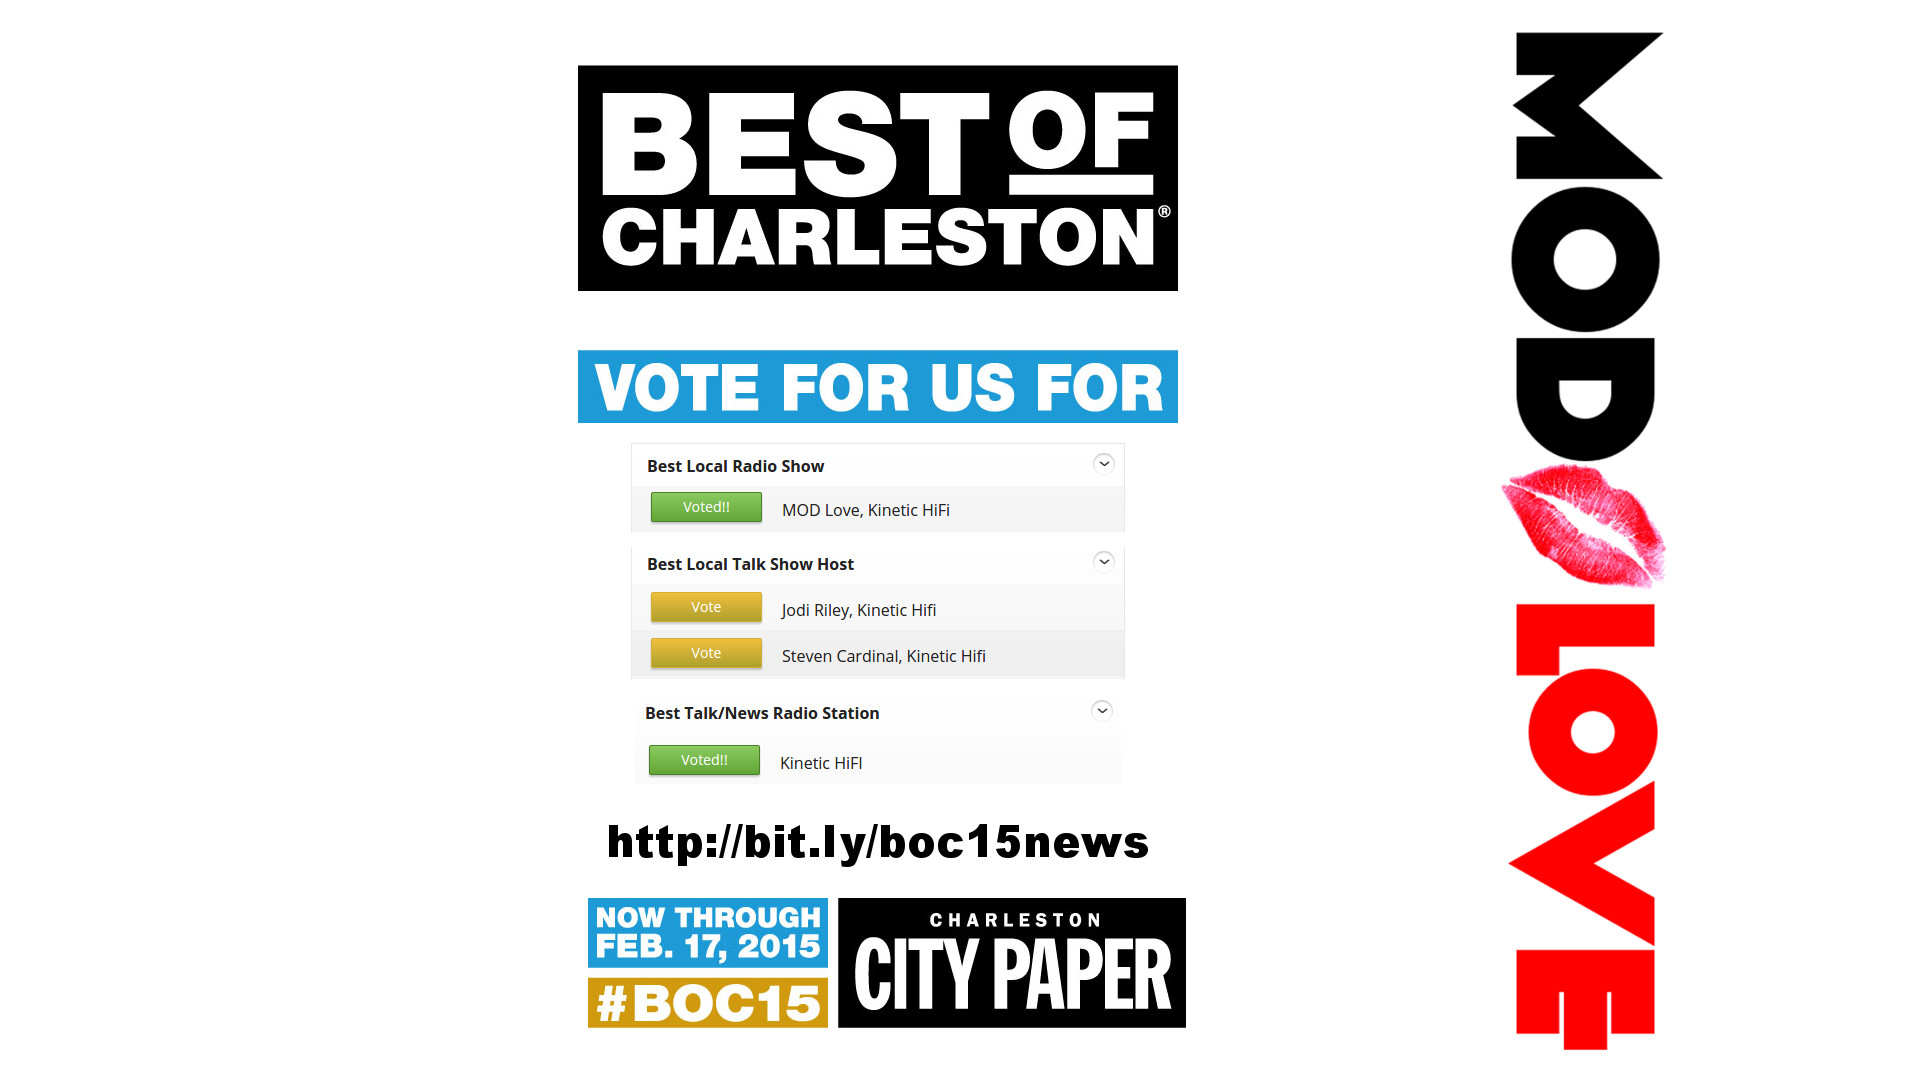 Best of Charleston finalists